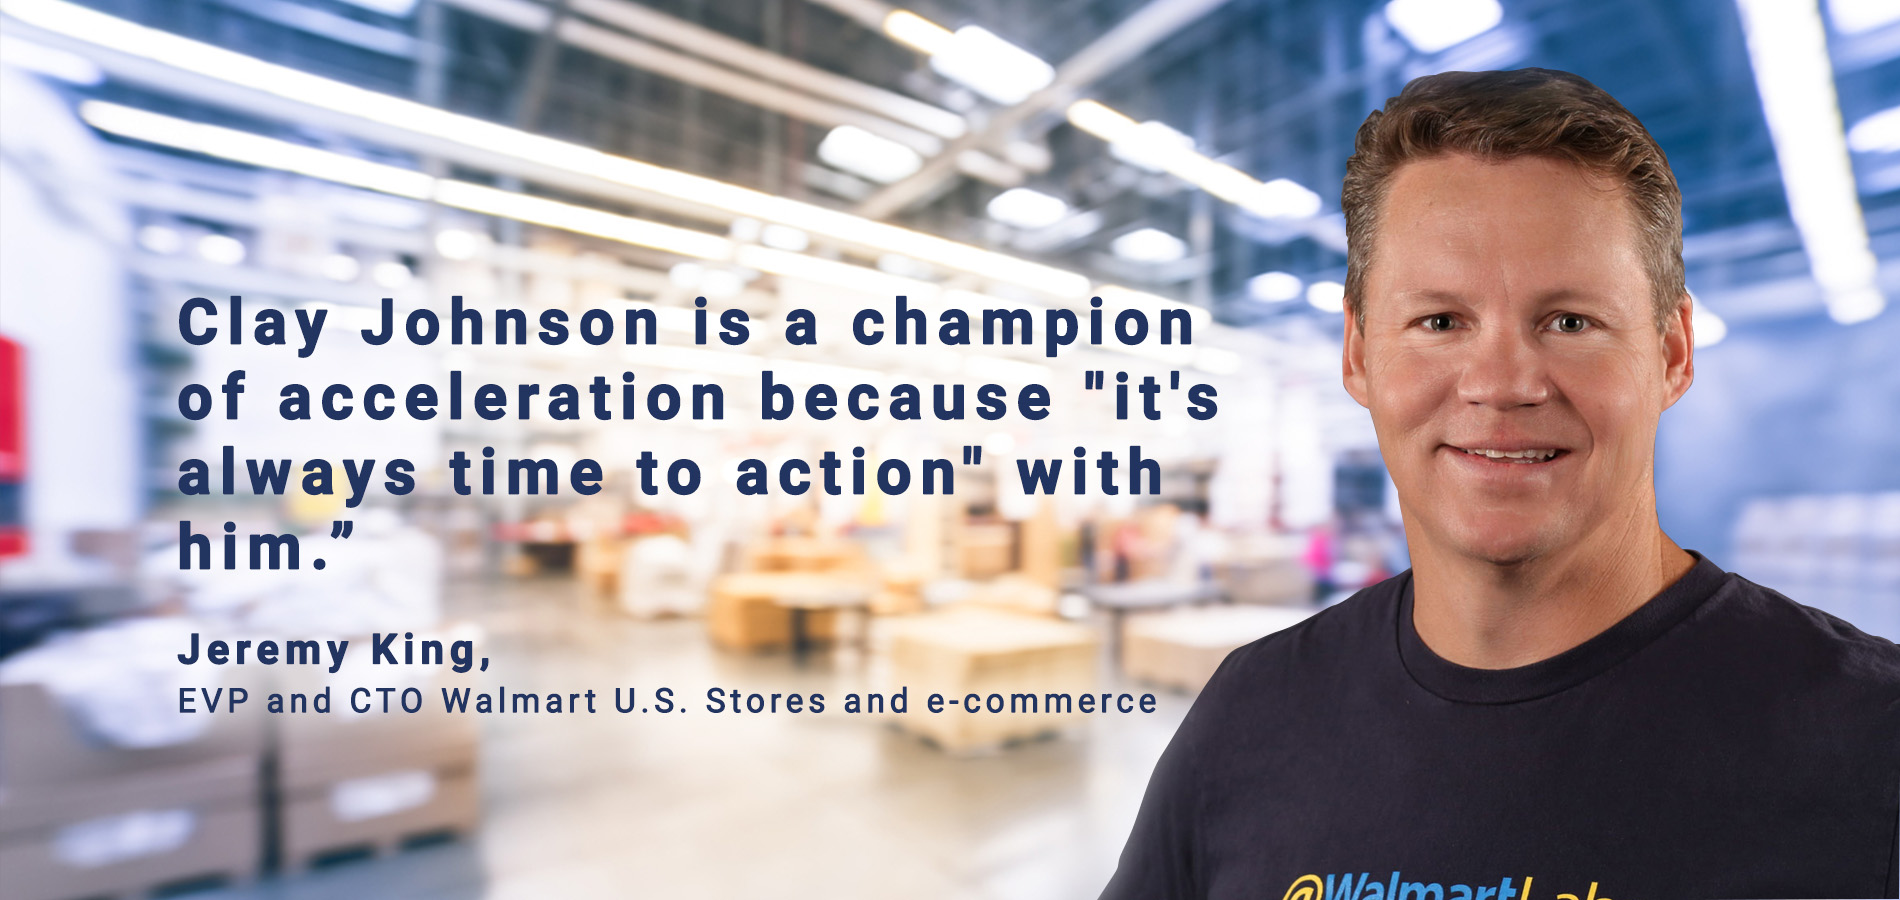 Jeremy King EVP and CTO Walmart quoted on Clay Johnson Bold Leadership